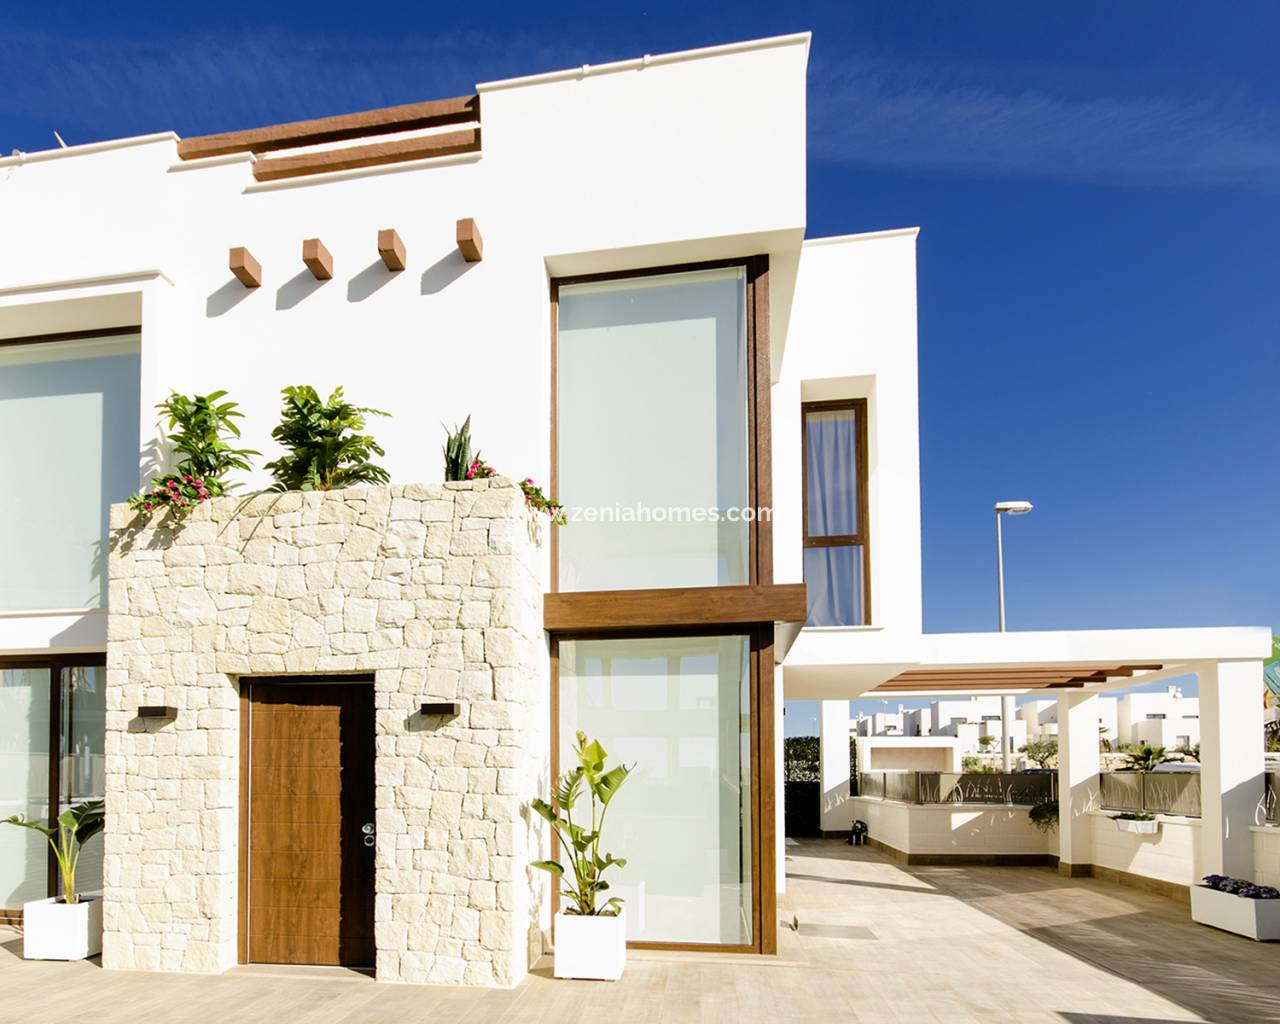 Detached Villa - New Build - Rojales - Rojales